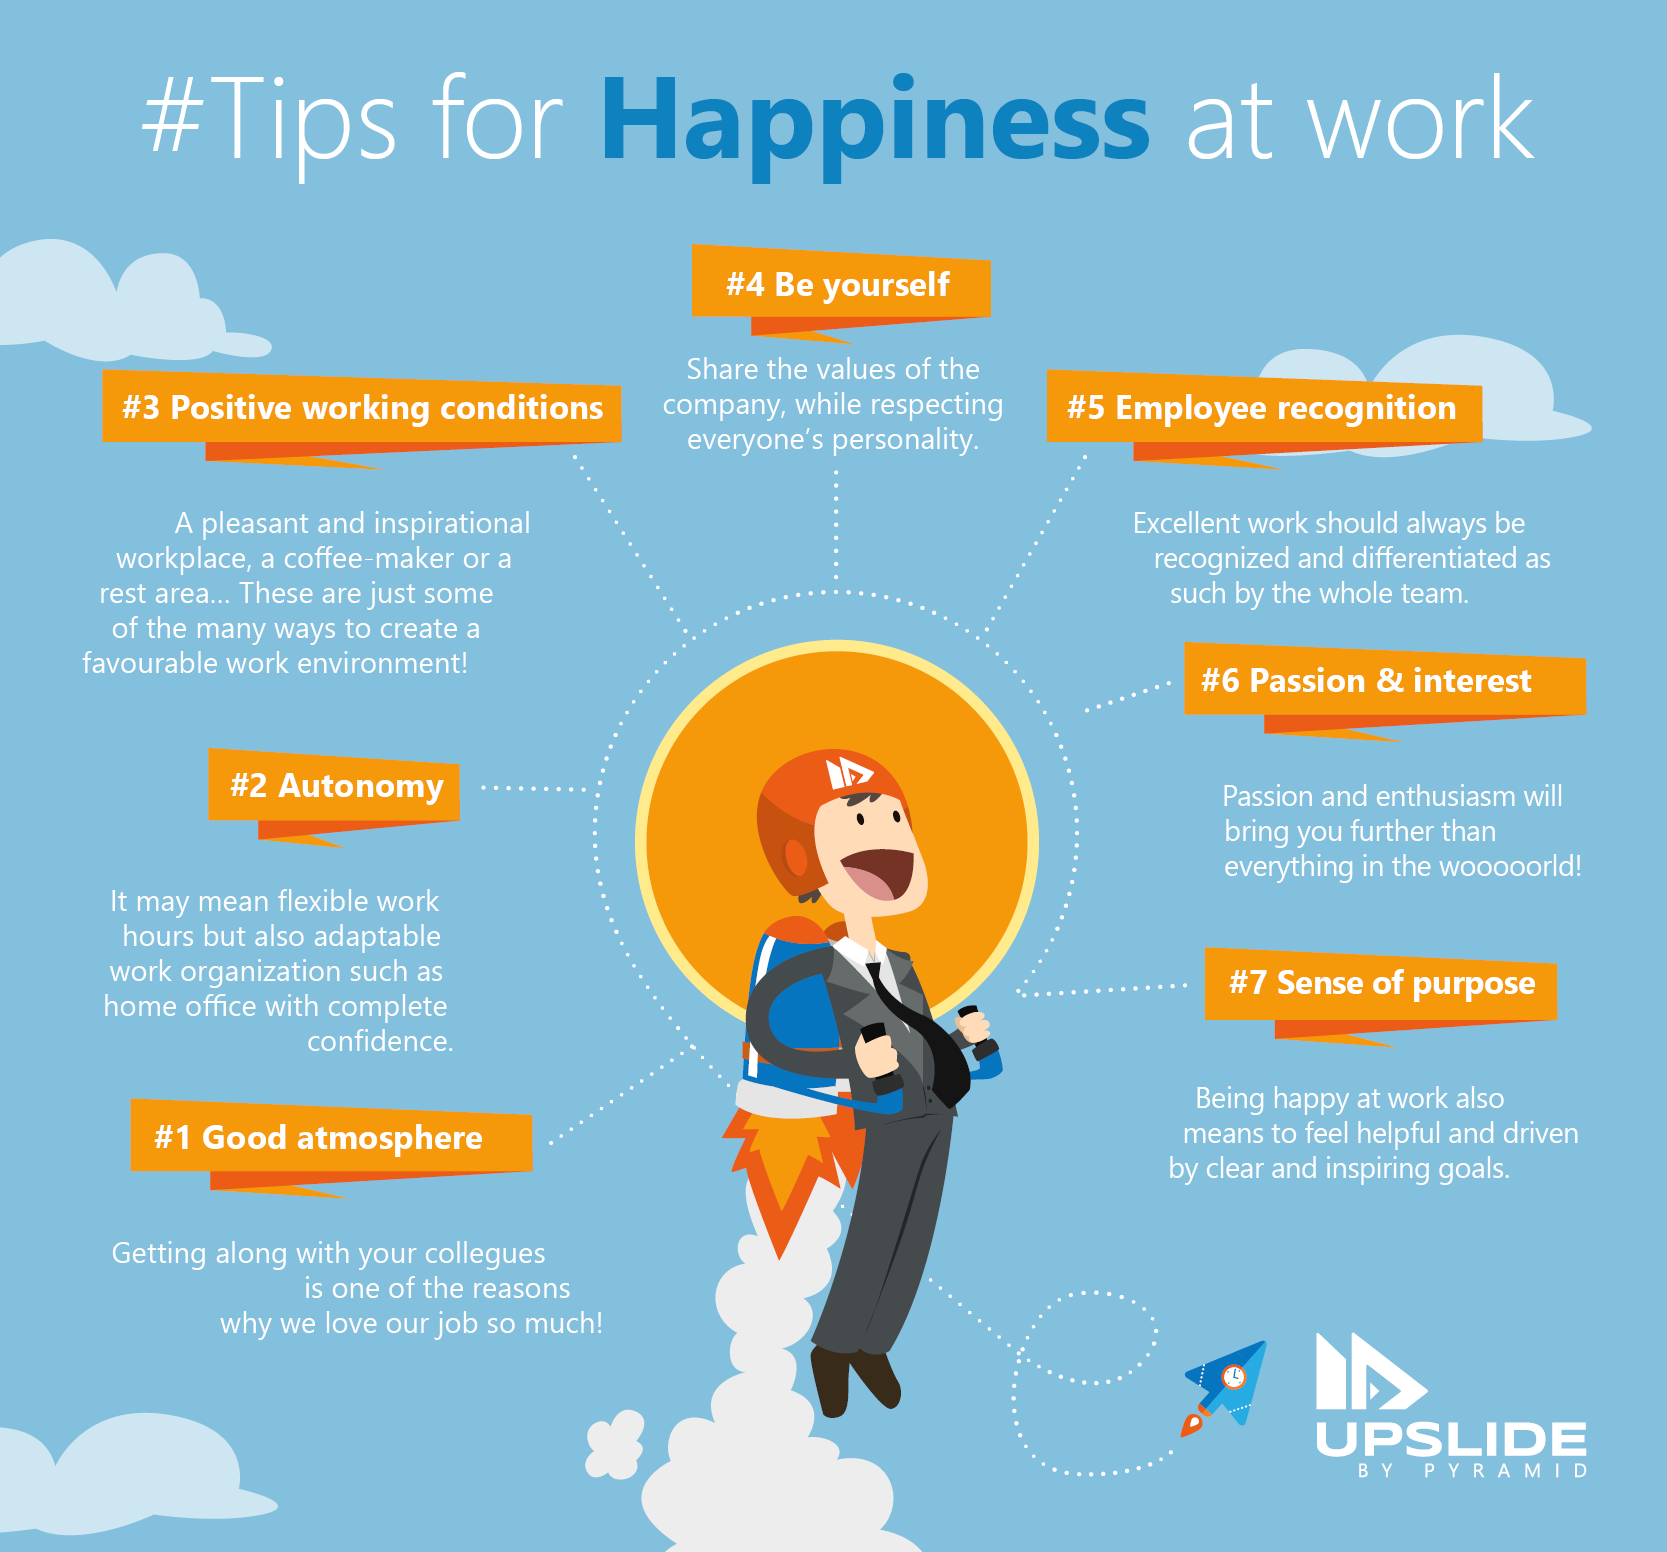 Tips for Happiness at Work